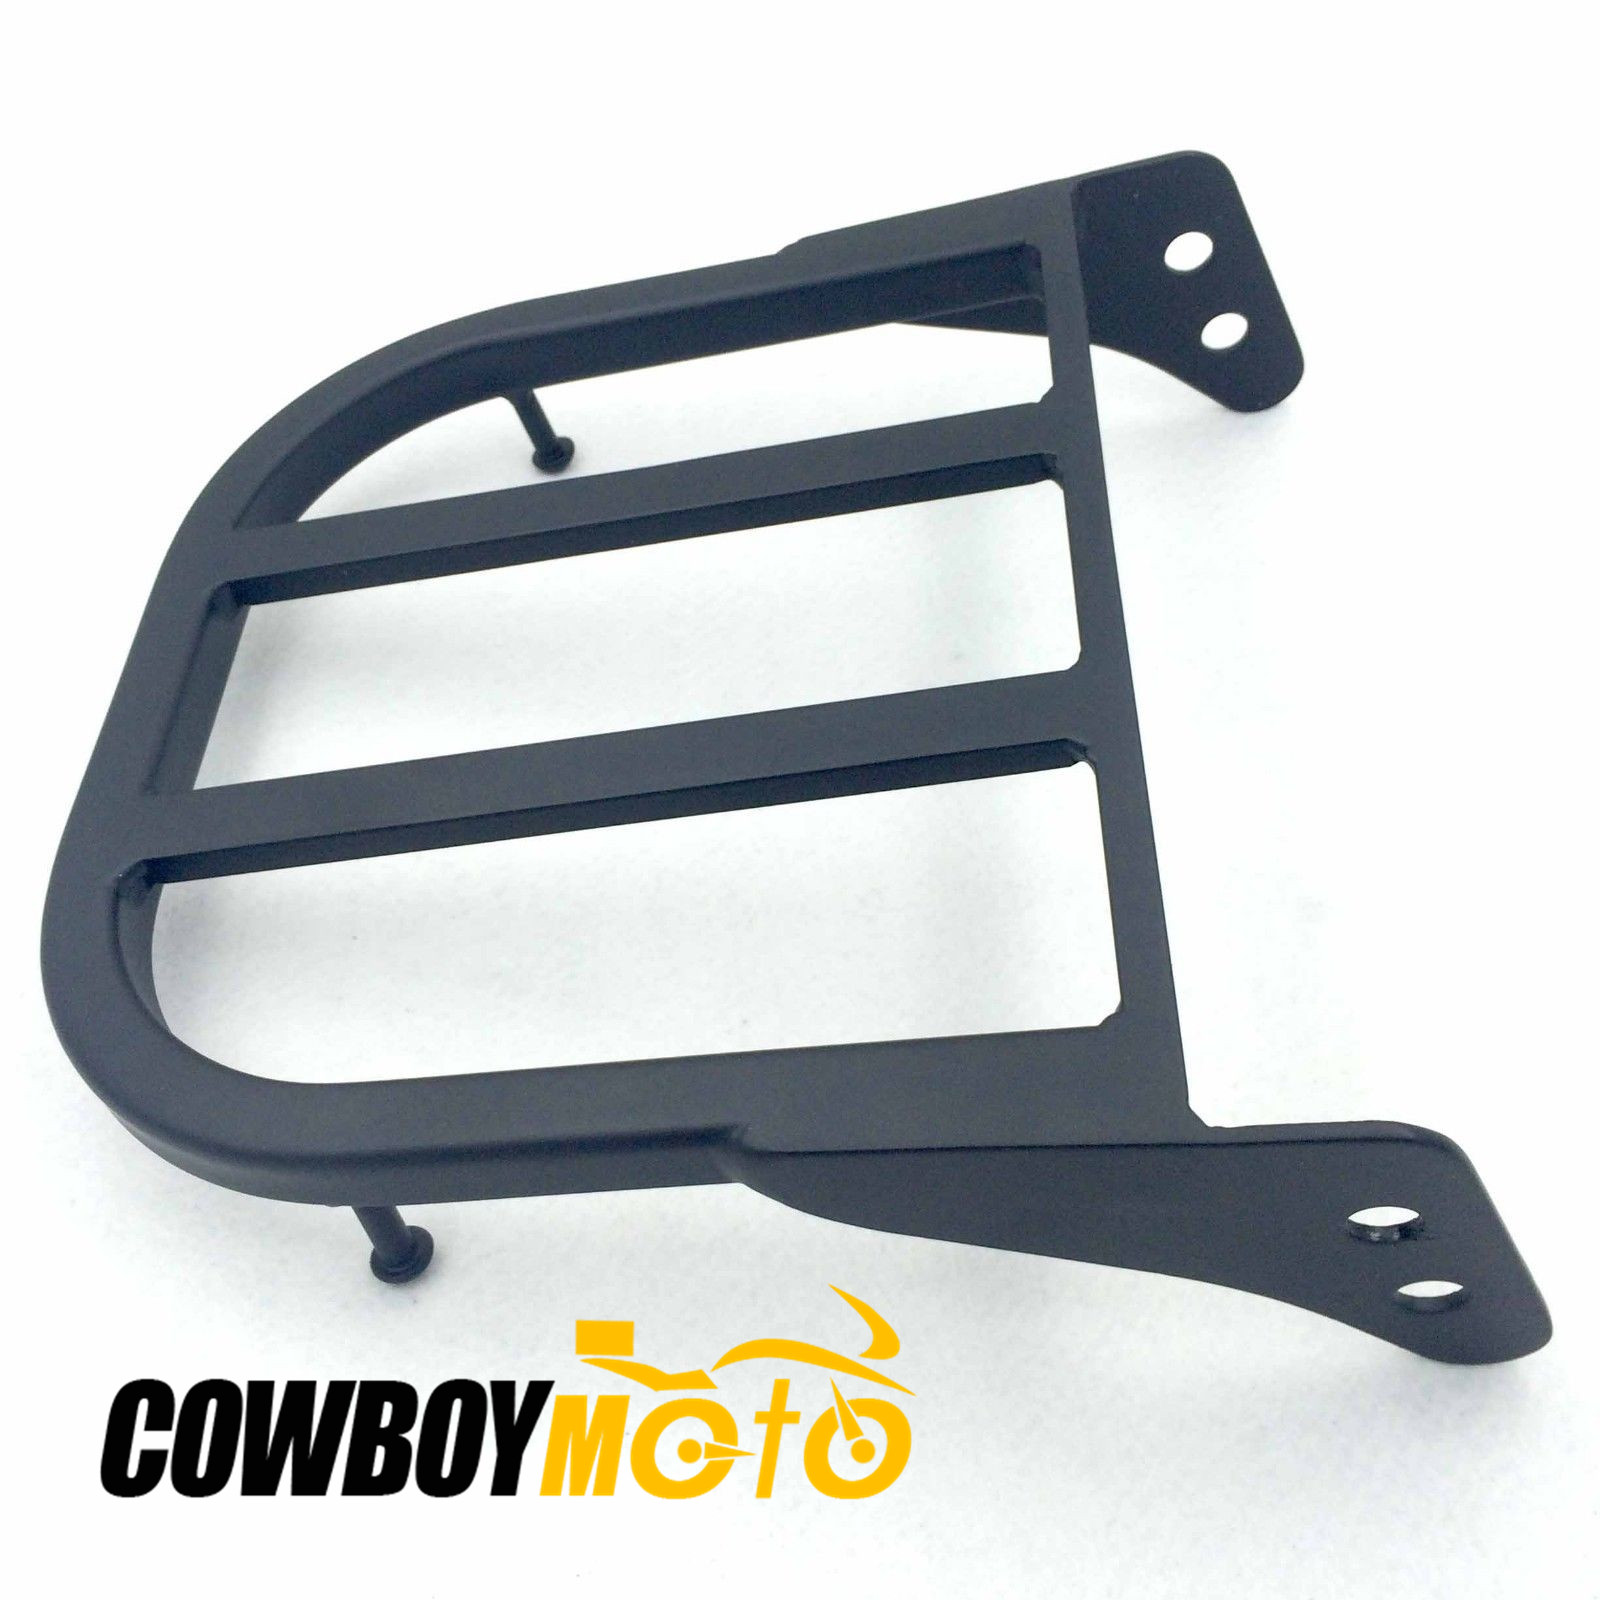 Black Sissy Bar Luggage Rack For Suzuki Marauder VZ800 / Boulevard C50 / C90 / C50 / M50 fixmee 50pcs white plastic invisible wall mount photo picture frame nail hook hanger